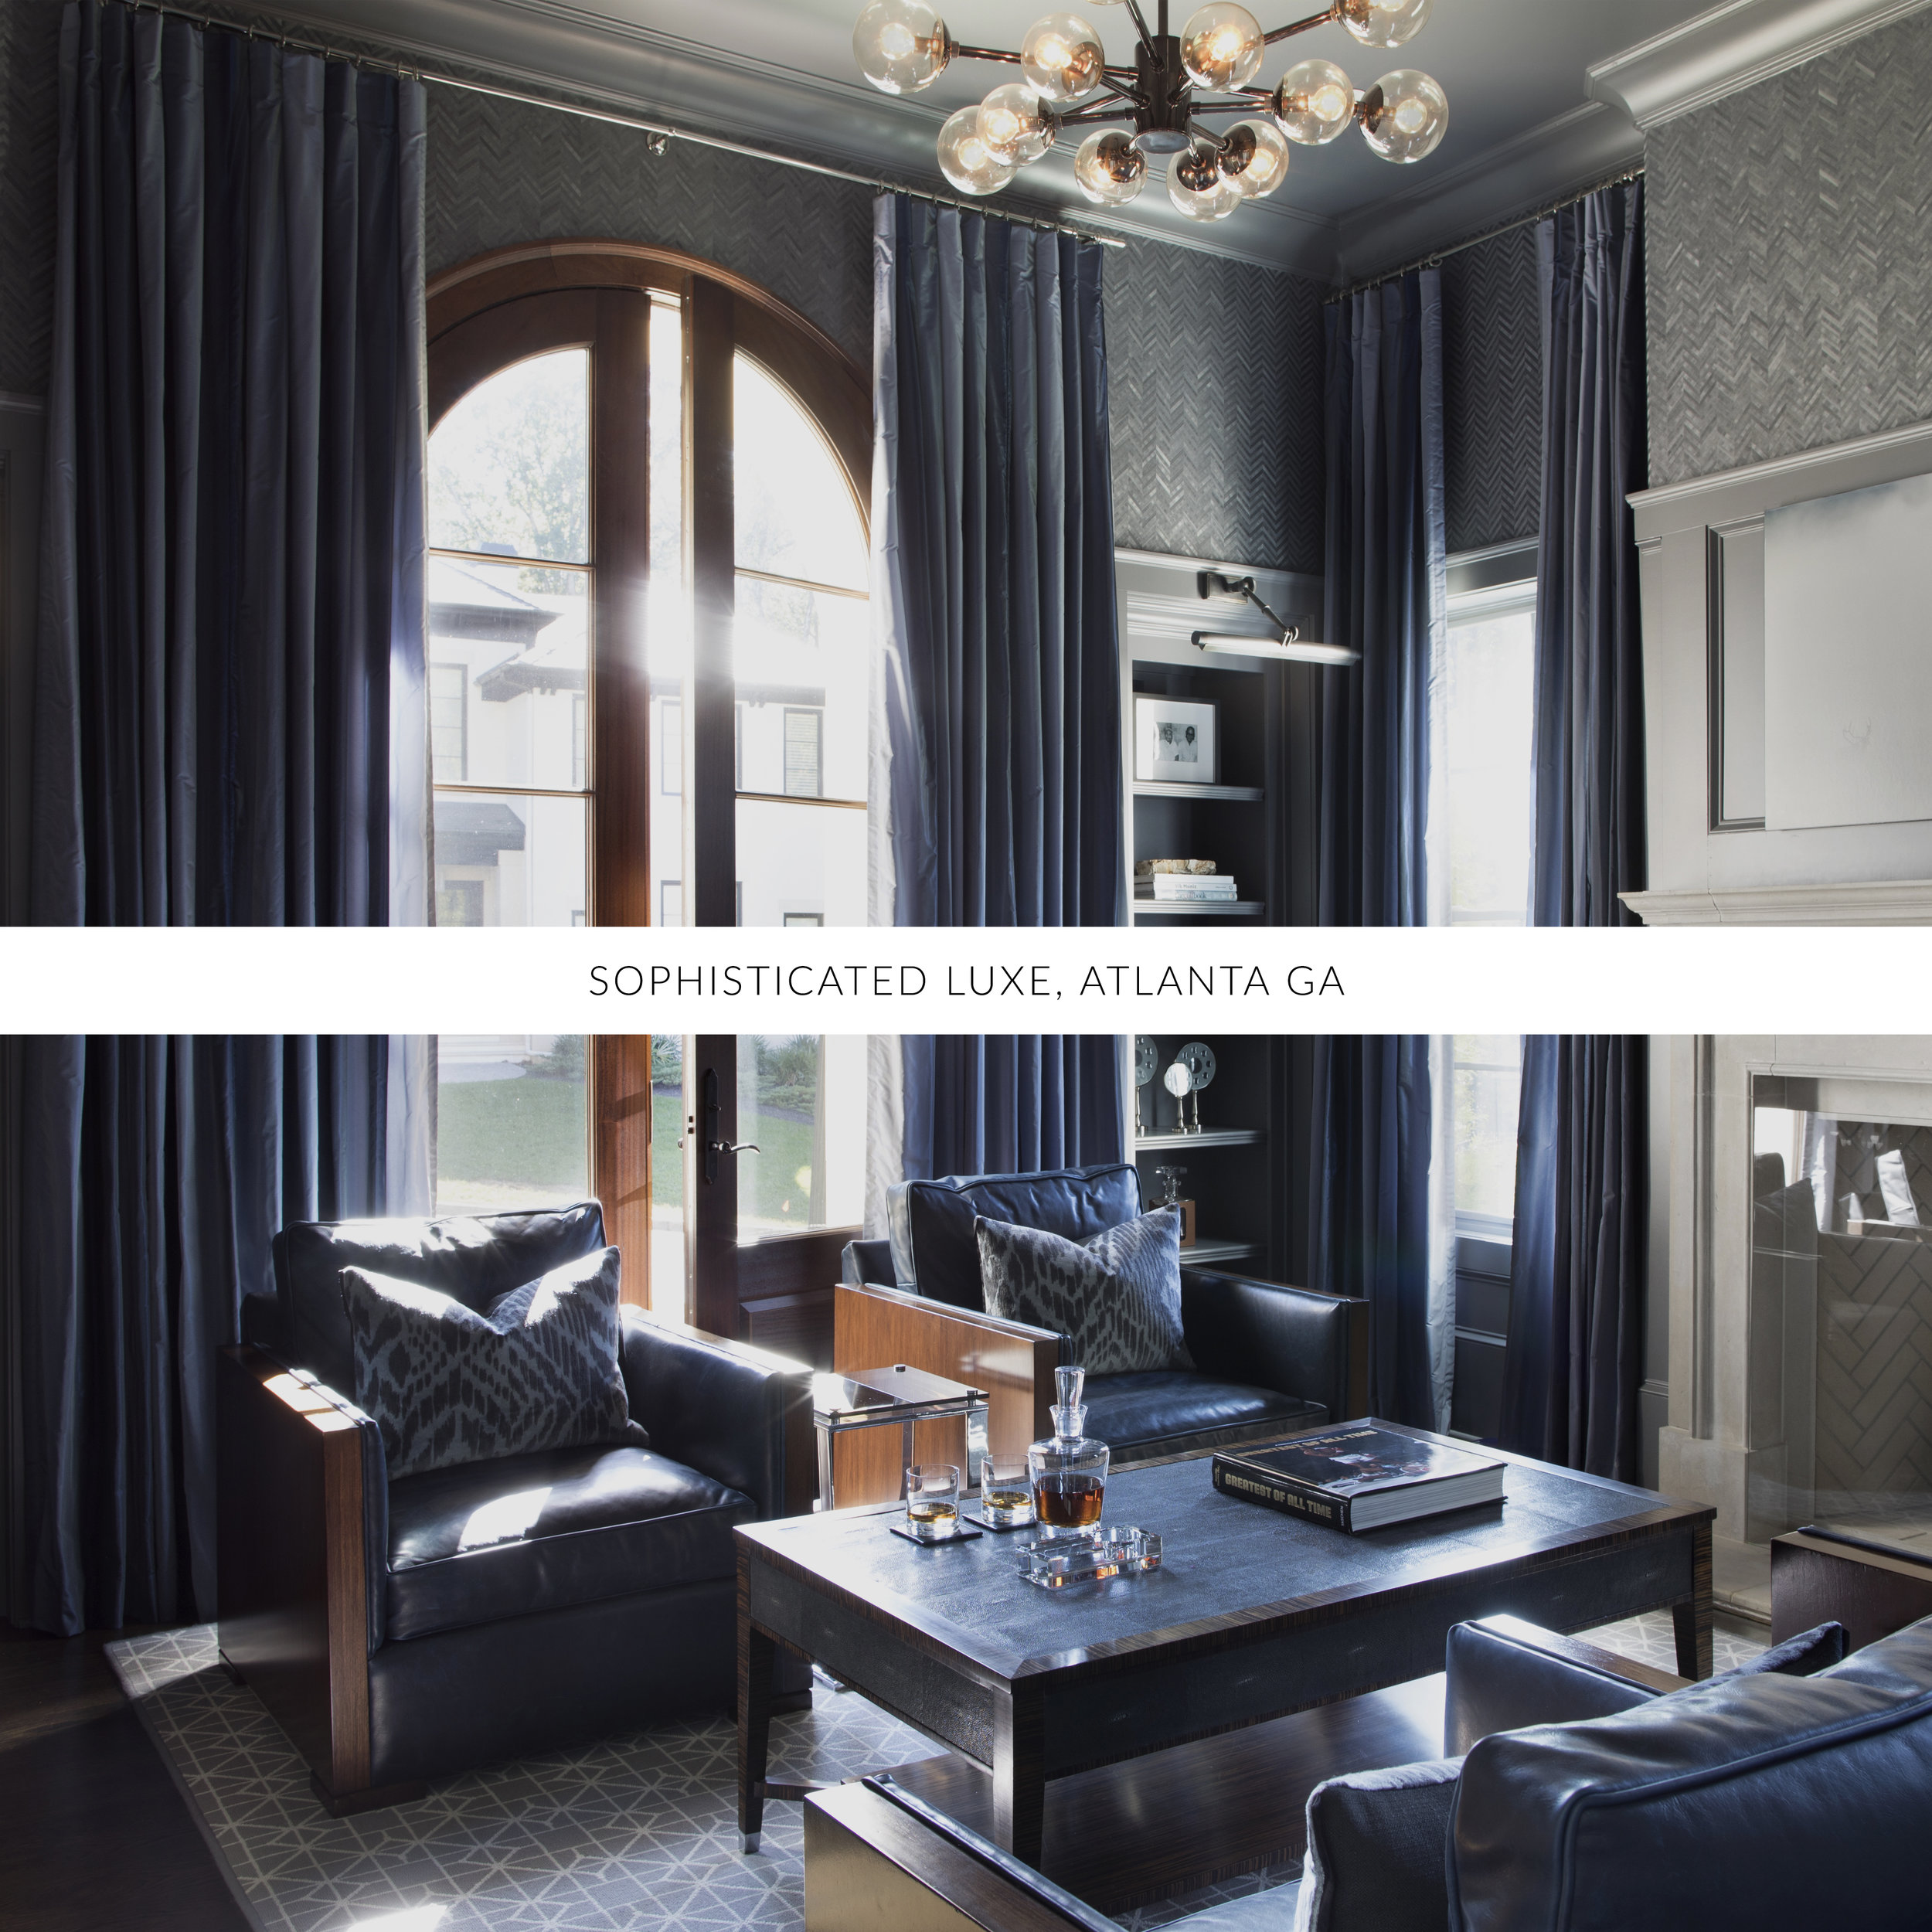 © Sophisticated Luxe, Traci Rhoads Interior Design, Private Residences and Country Clubs, Atlanta, GA